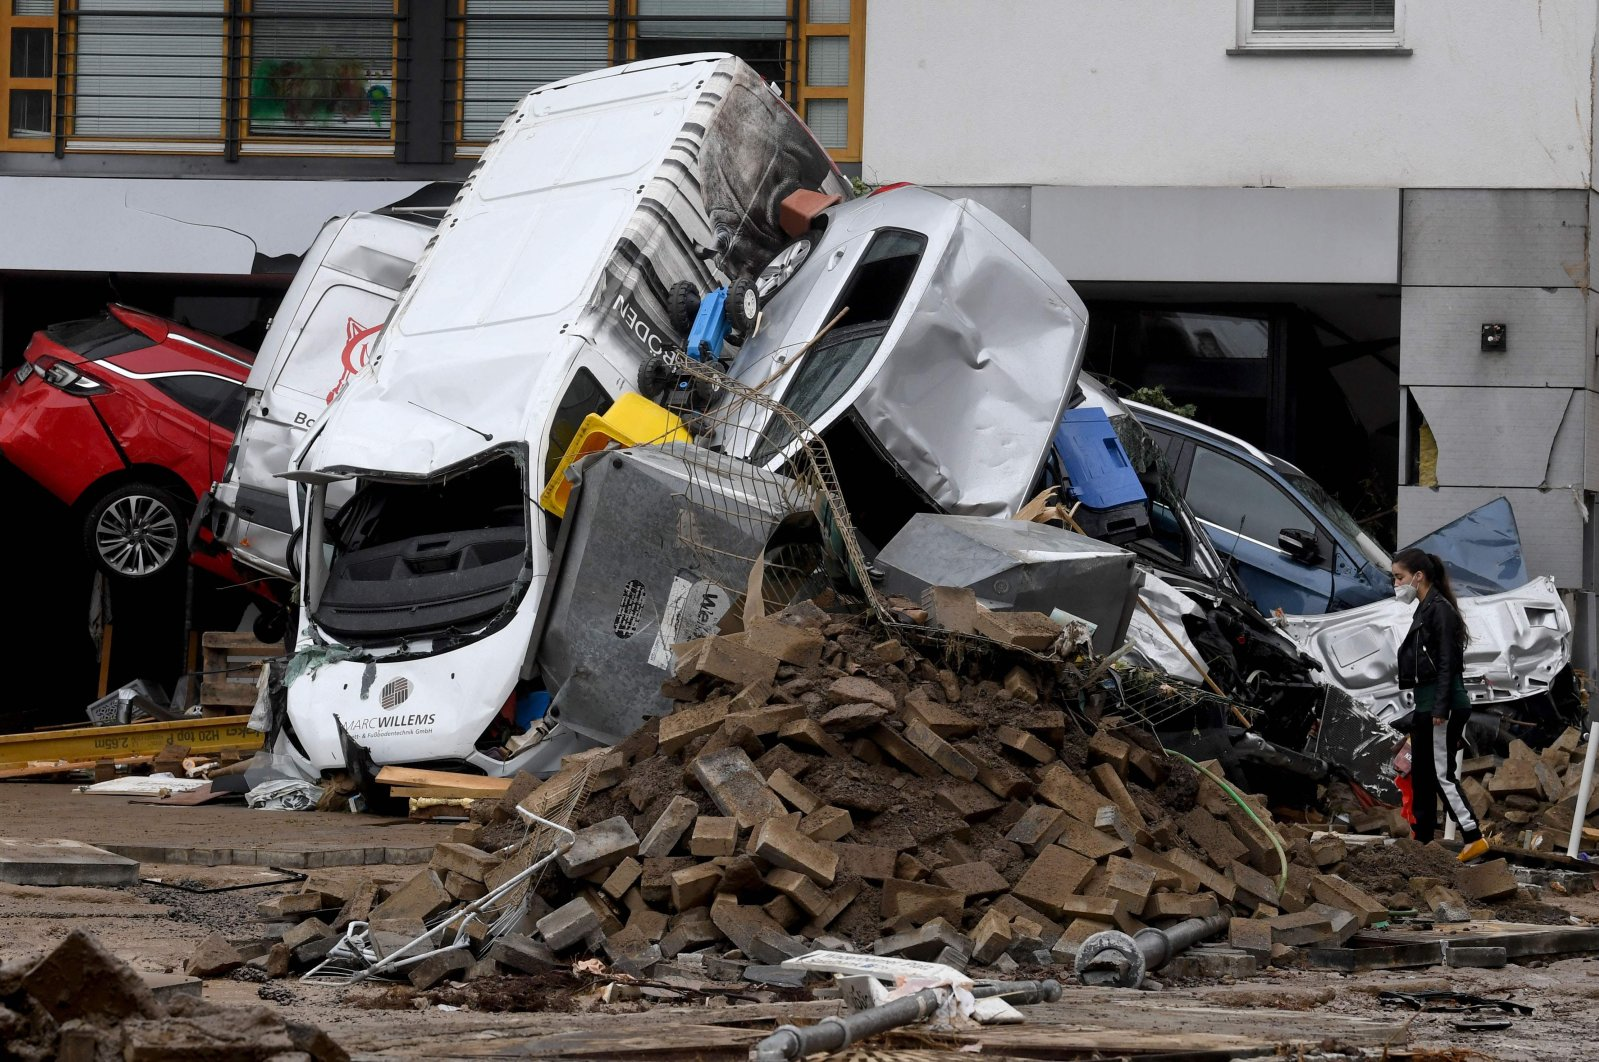 A woman looks at cars and rubble piled up in a street after the floods caused major damage in Bad Neuenahr-Ahrweiler, western Germany, July 16, 2021. (AFP Photo)